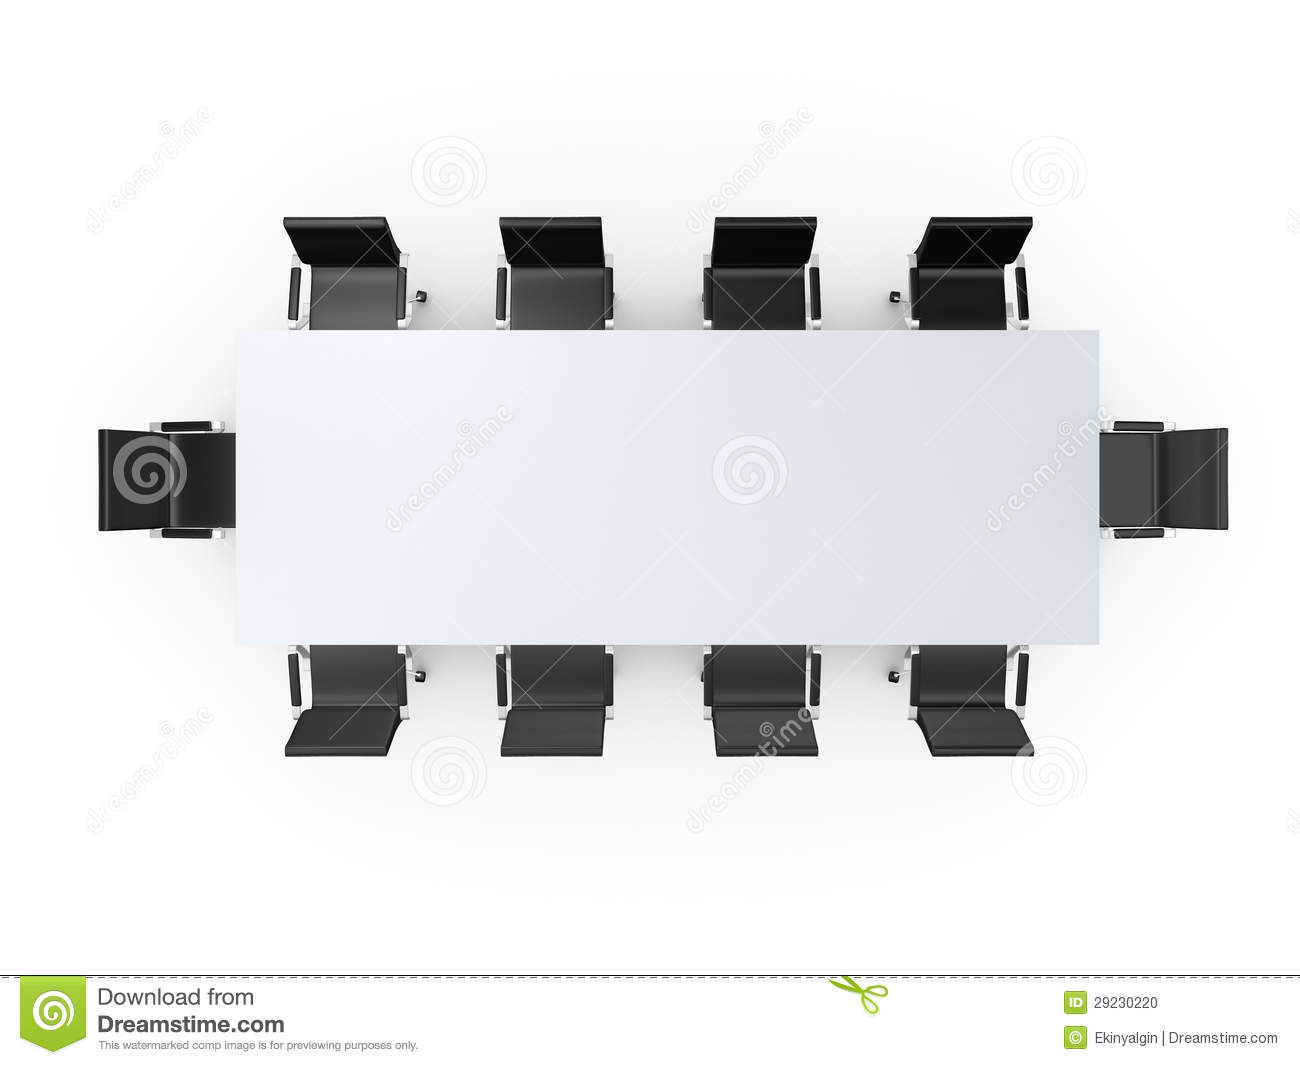 Conference Table And Office Chairs Stock Illustration  : conference table office chairs 29230220 from www.dreamstime.com size 1300 x 1065 jpeg 59kB